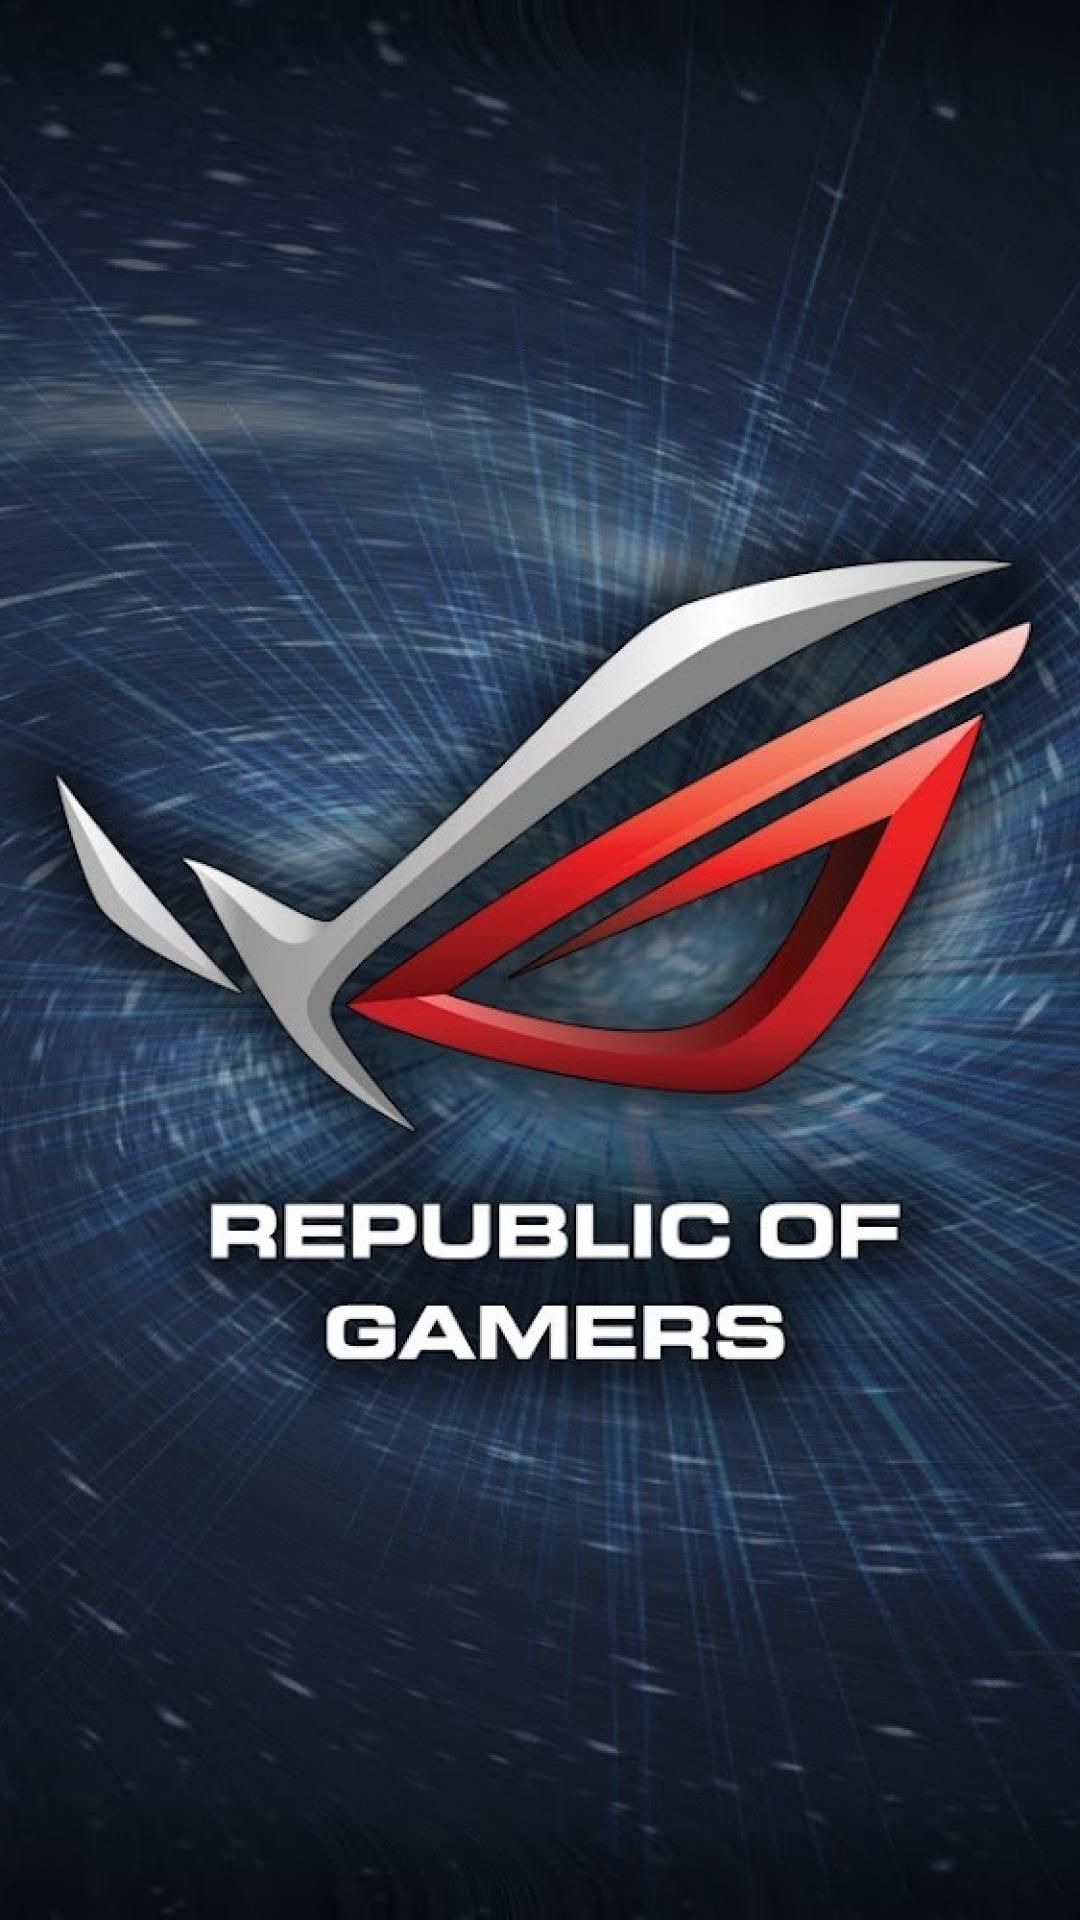 Republik Of Gamers Wallpaper Android 1080x1920 Download Hd Wallpaper Wallpapertip